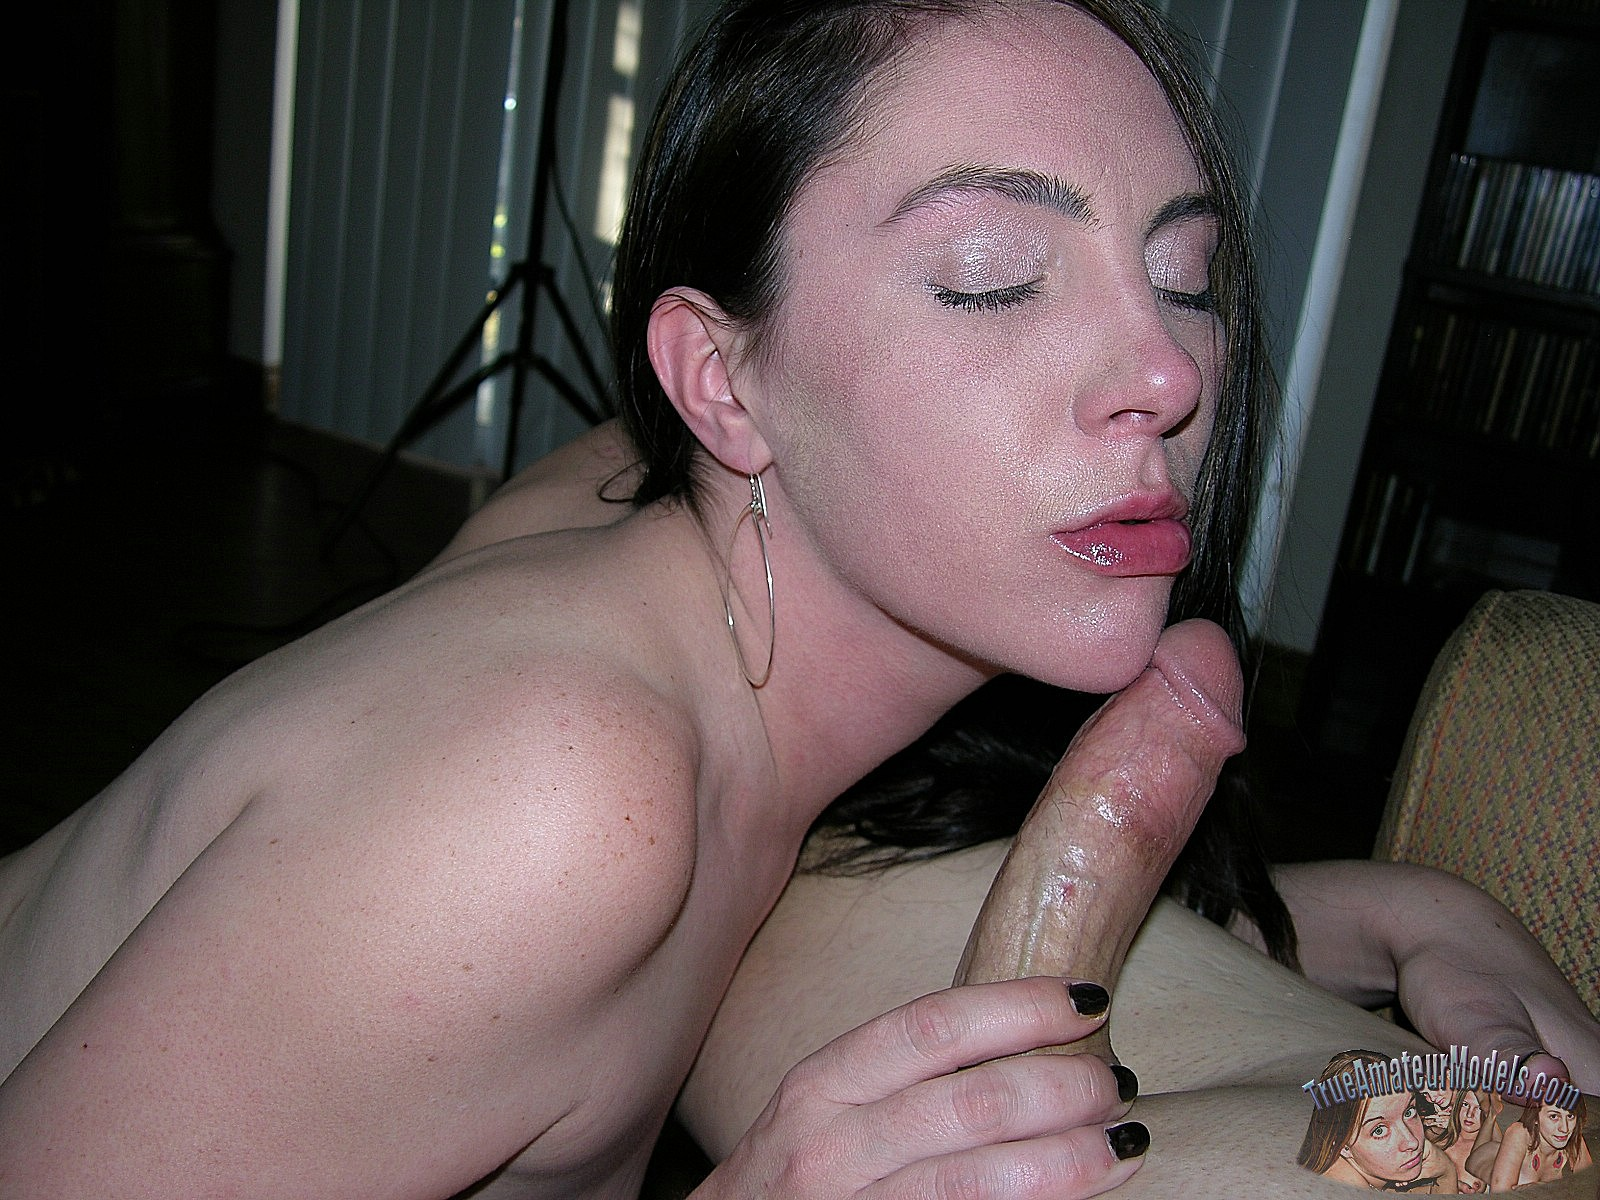 Homemade milf nude bj